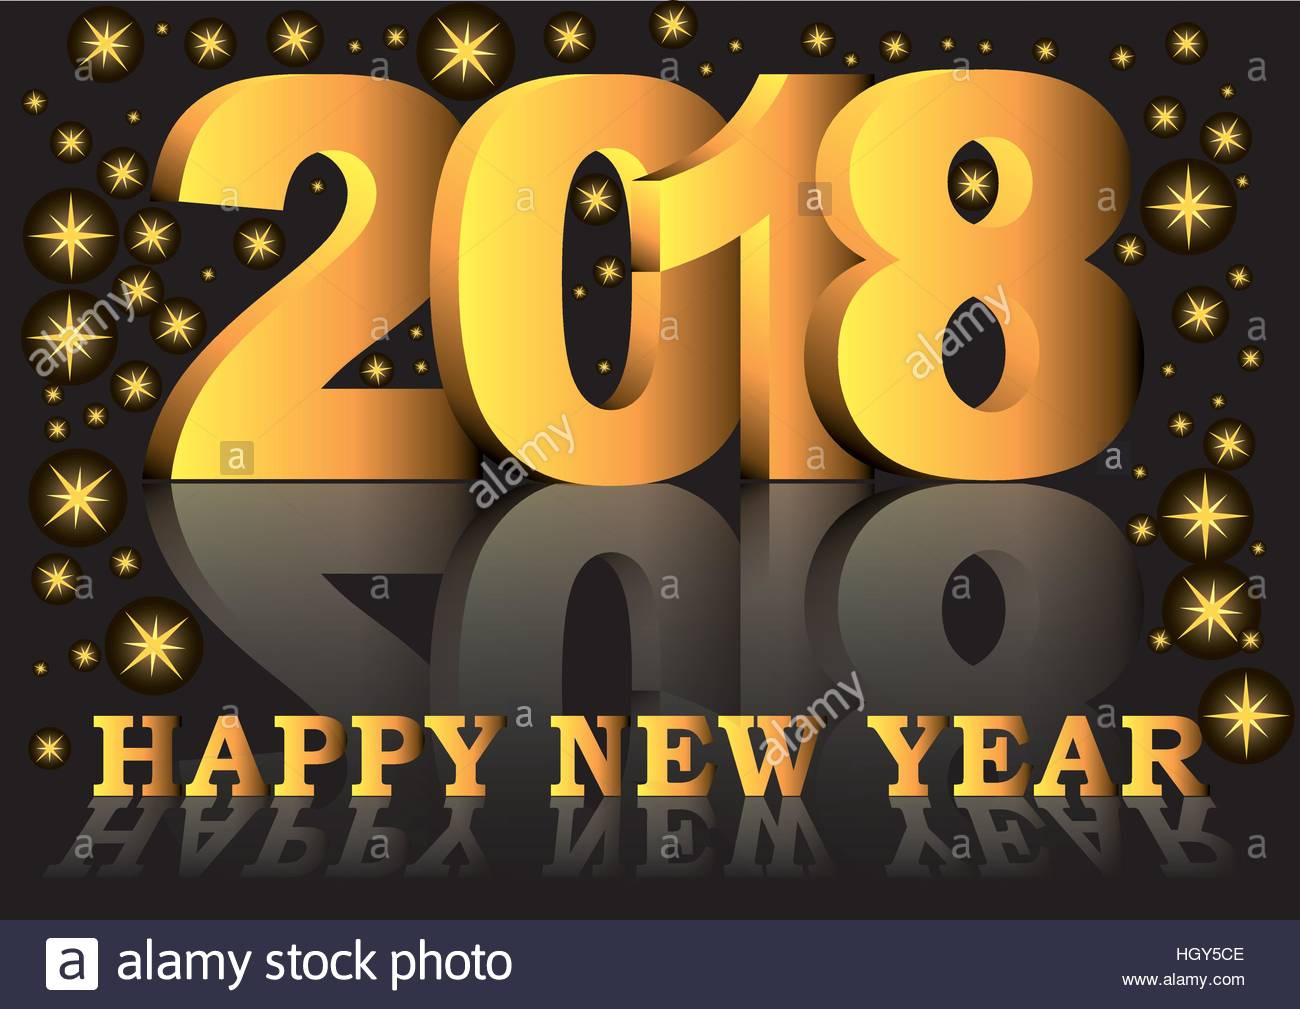 happy new year 2018 greeting card with golden numbers and letters